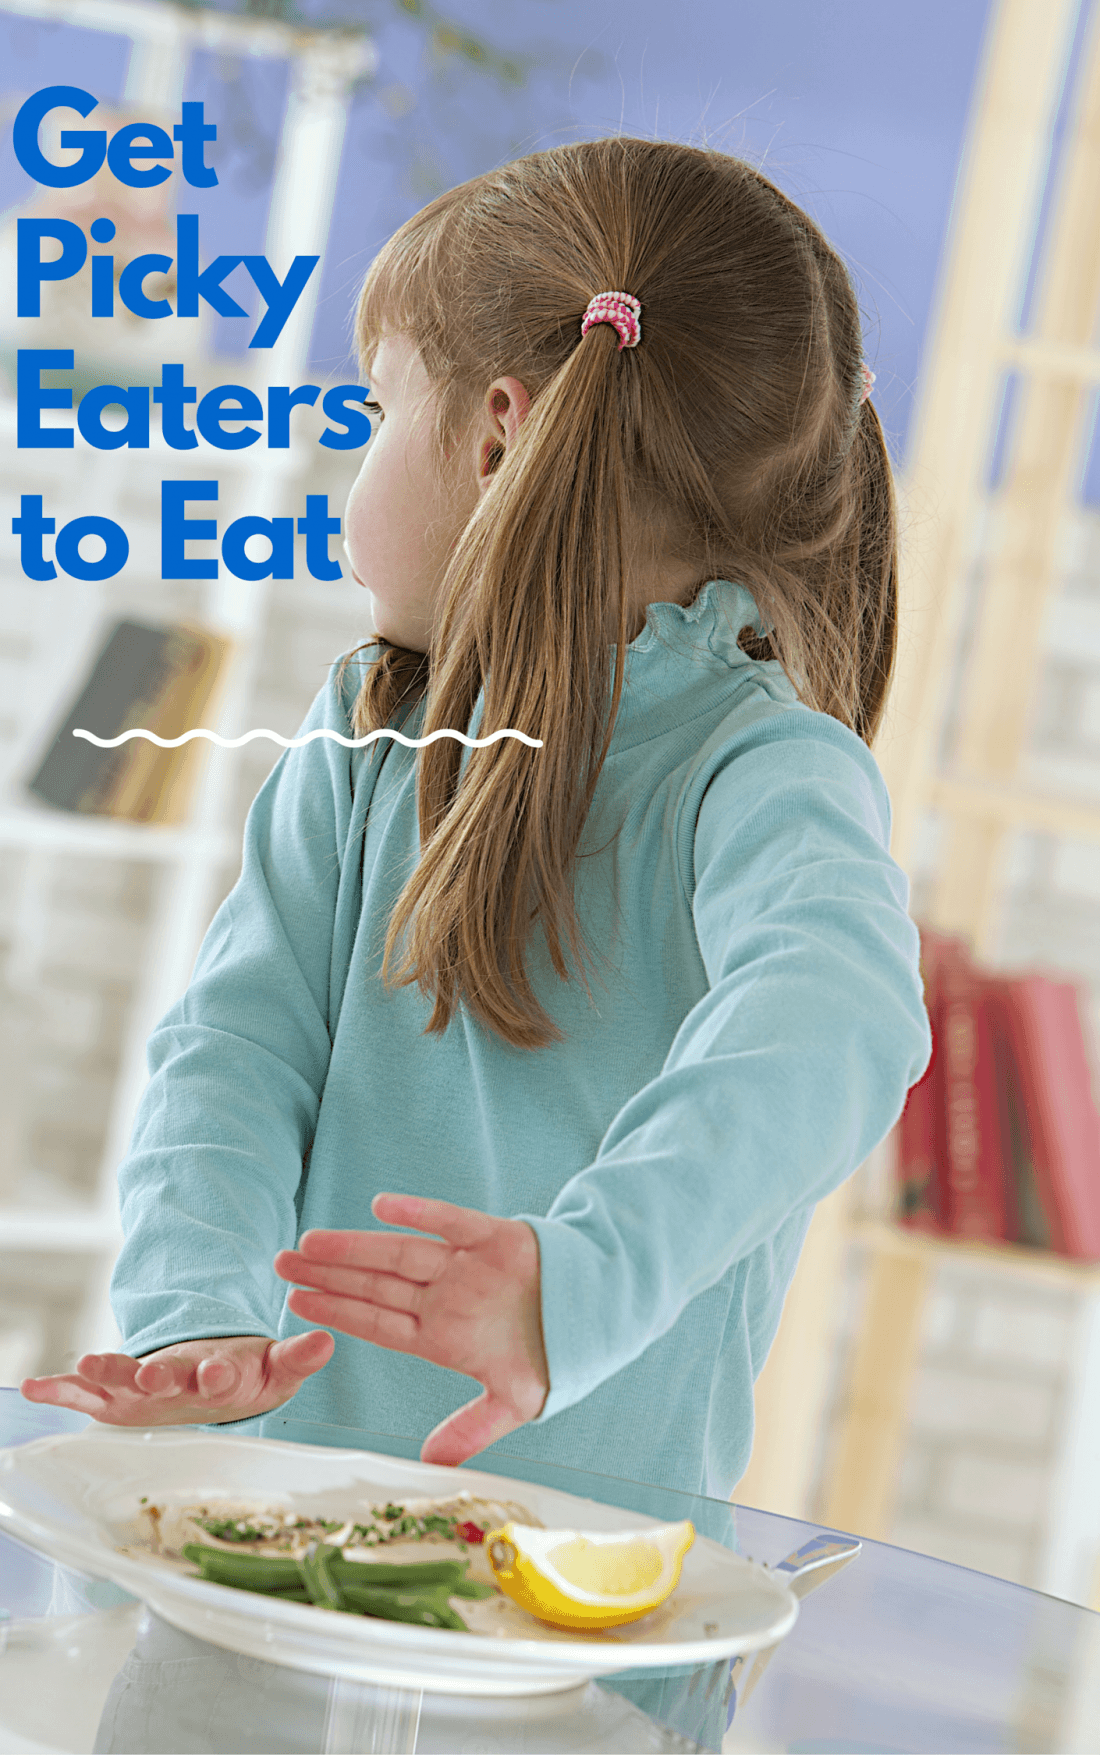 Get picky eaters to eat